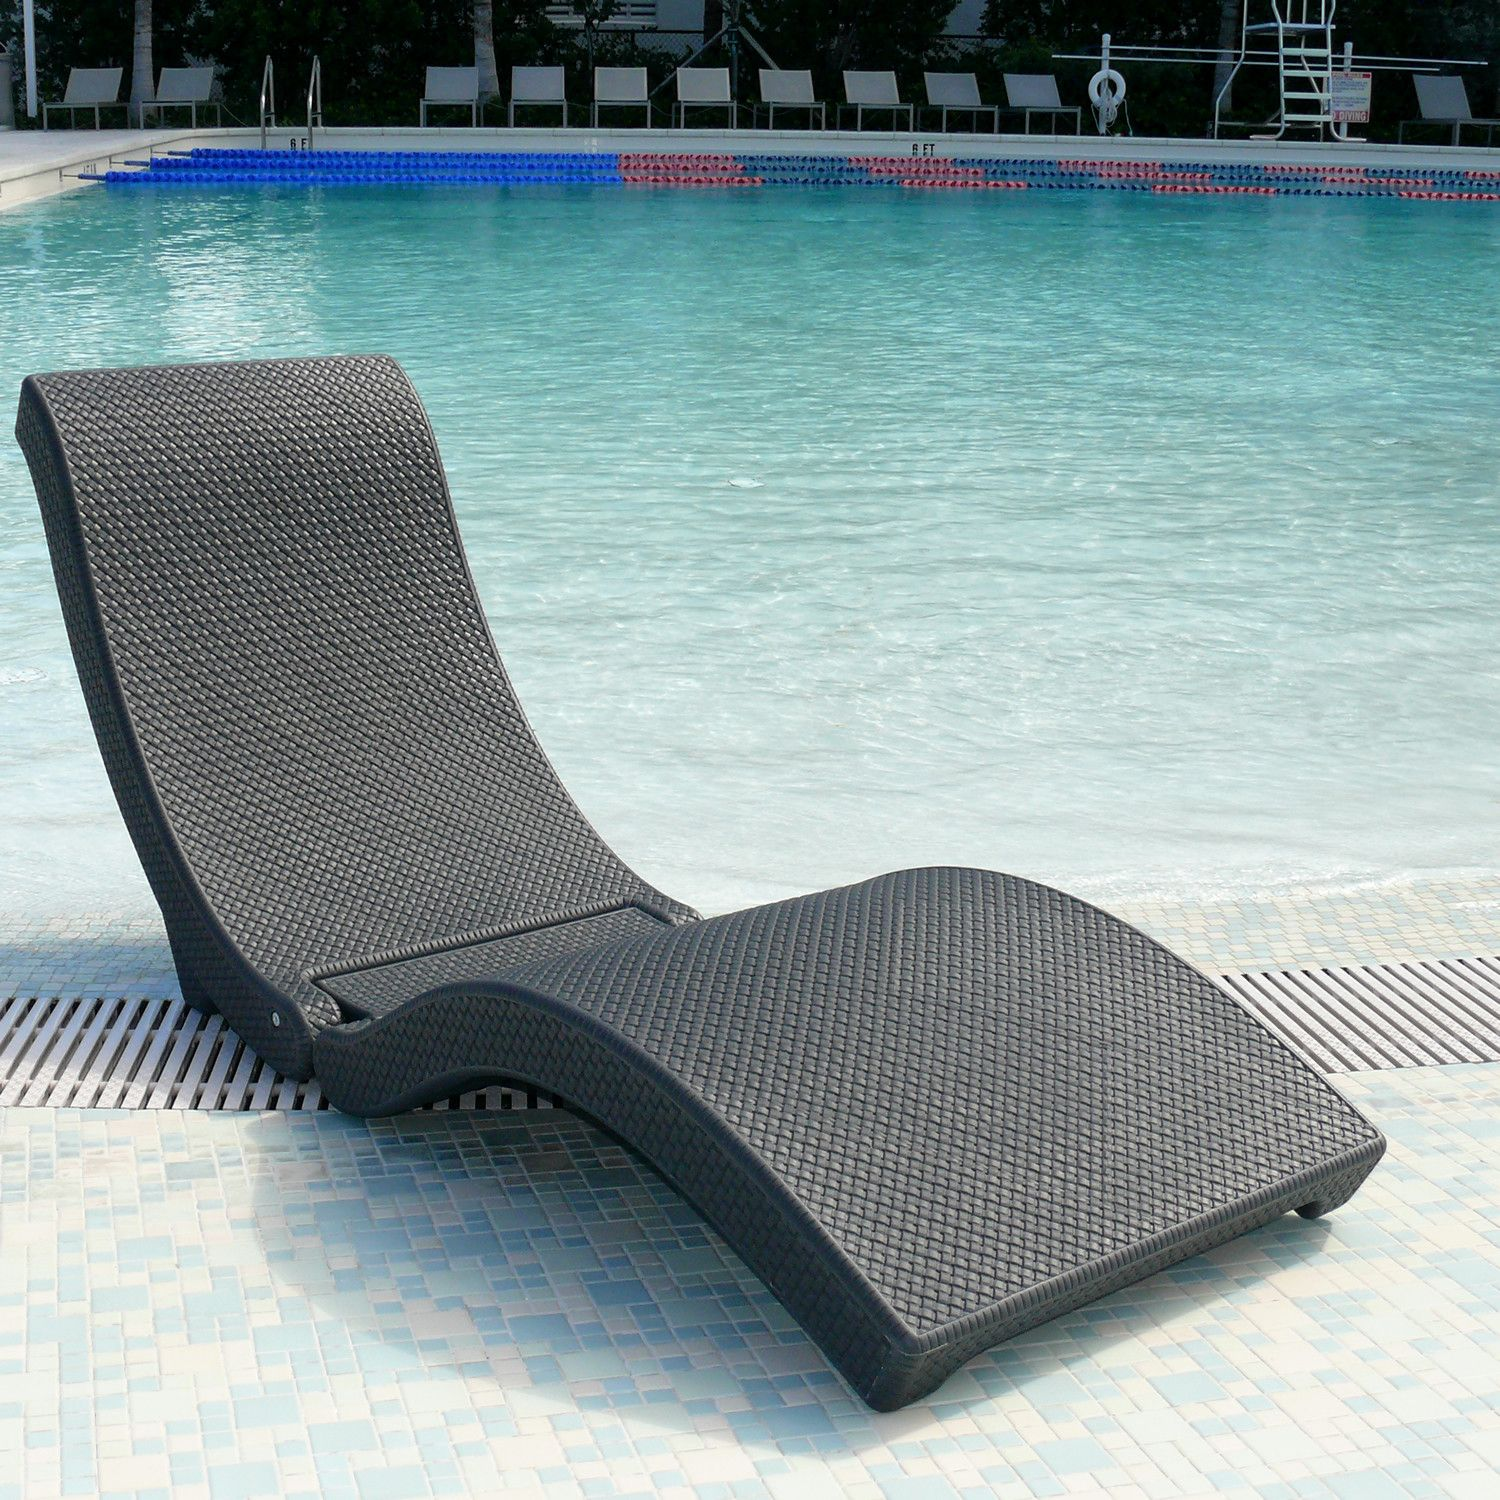 Plastic Lounge Chair Plastic Lounge Chairs Pool Summer Hurry Pool Lounge Chairs